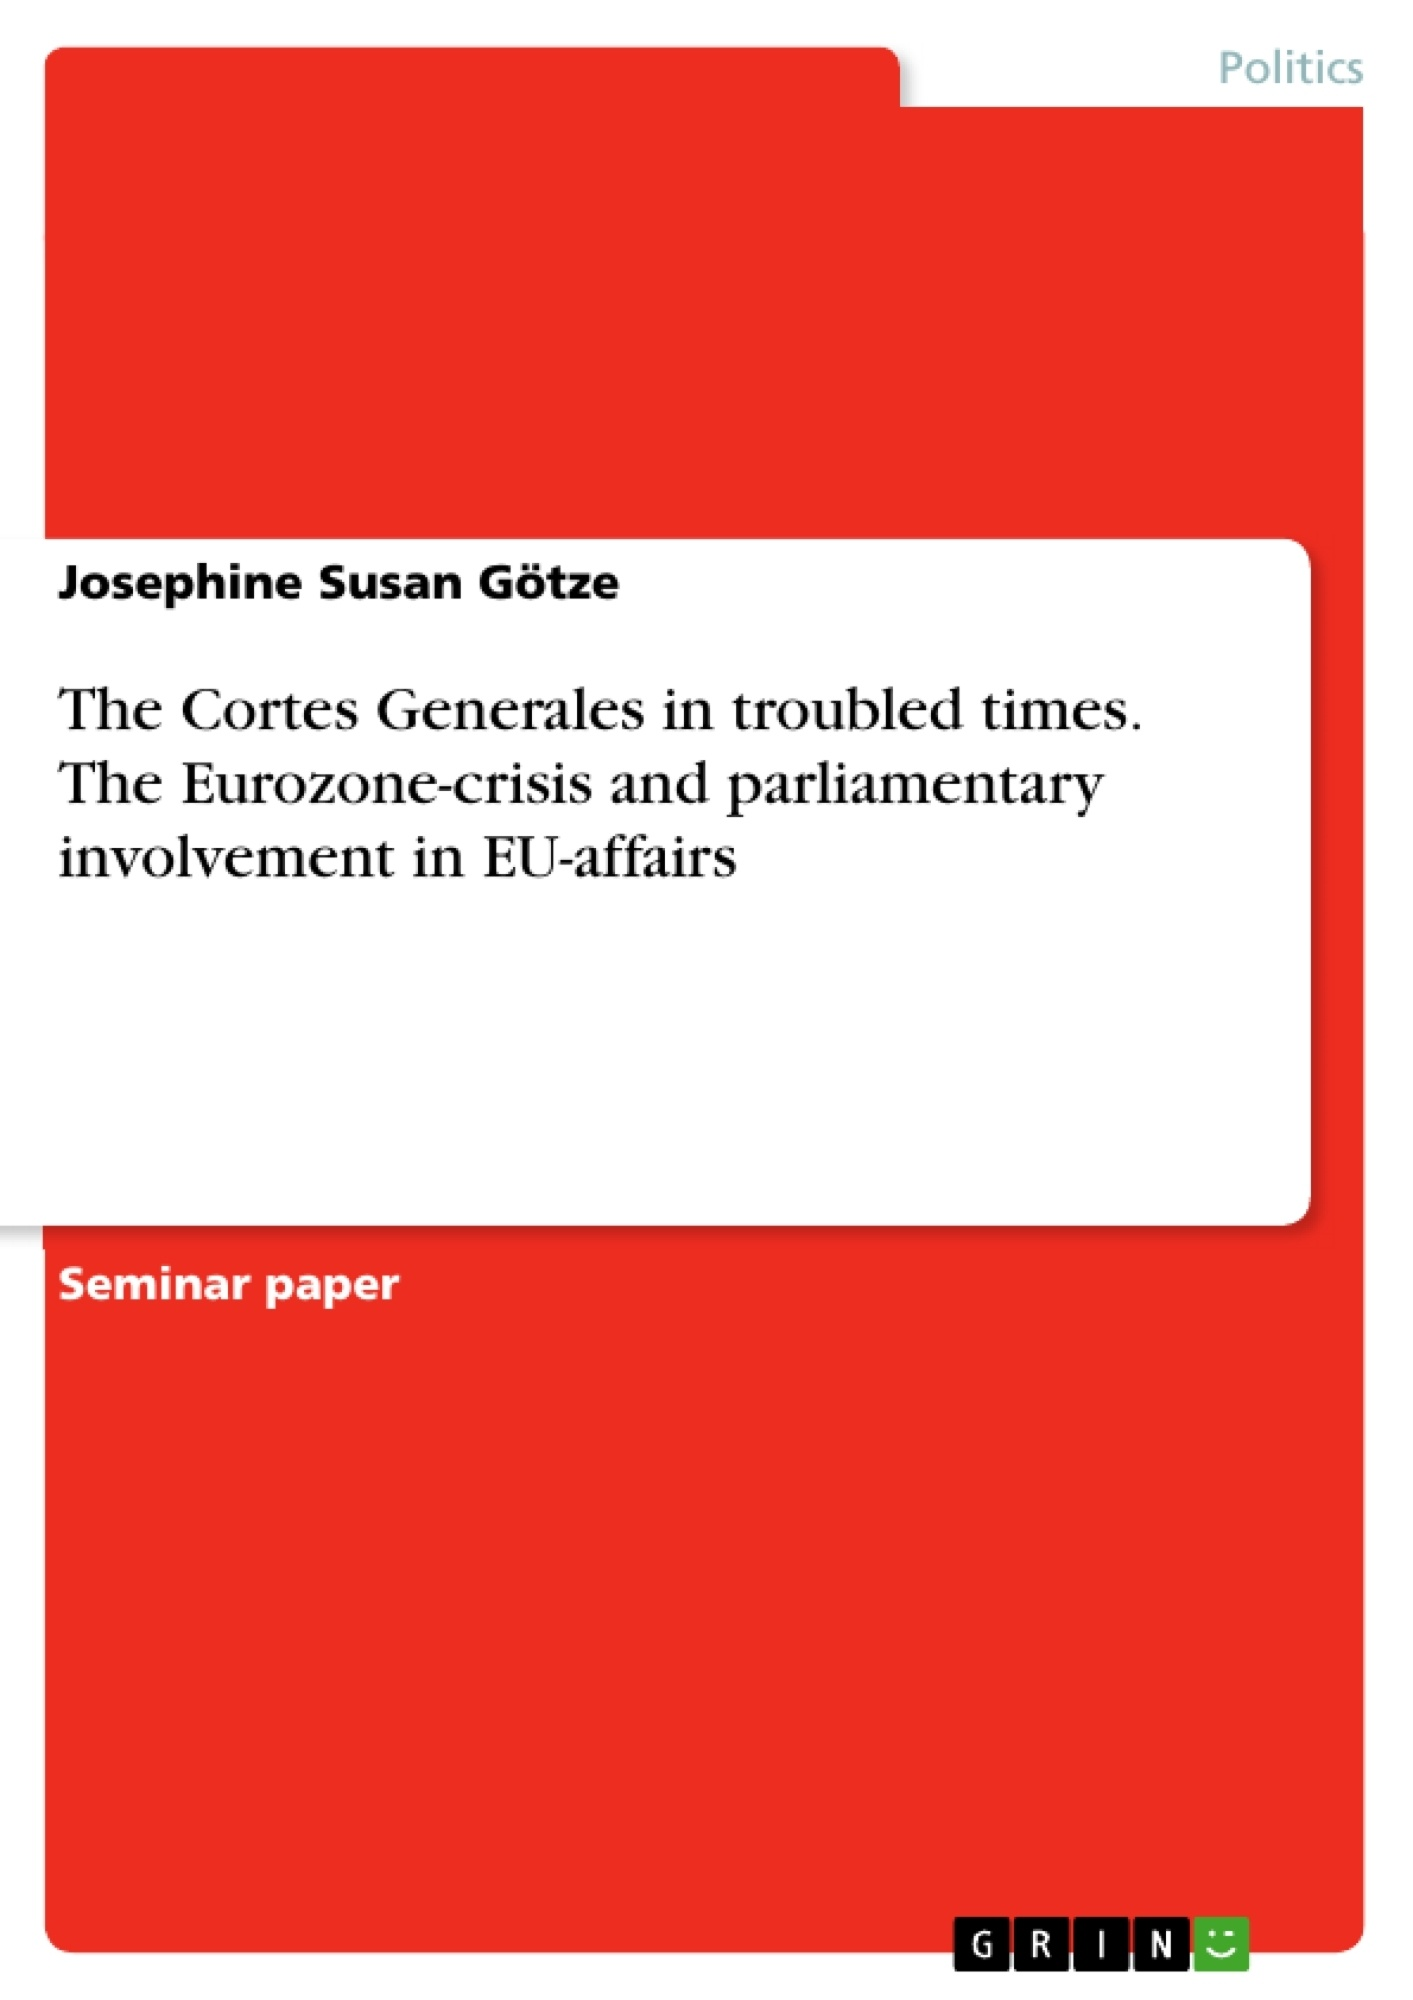 Title: The Cortes Generales in troubled times. The Eurozone-crisis and parliamentary involvement in EU-affairs